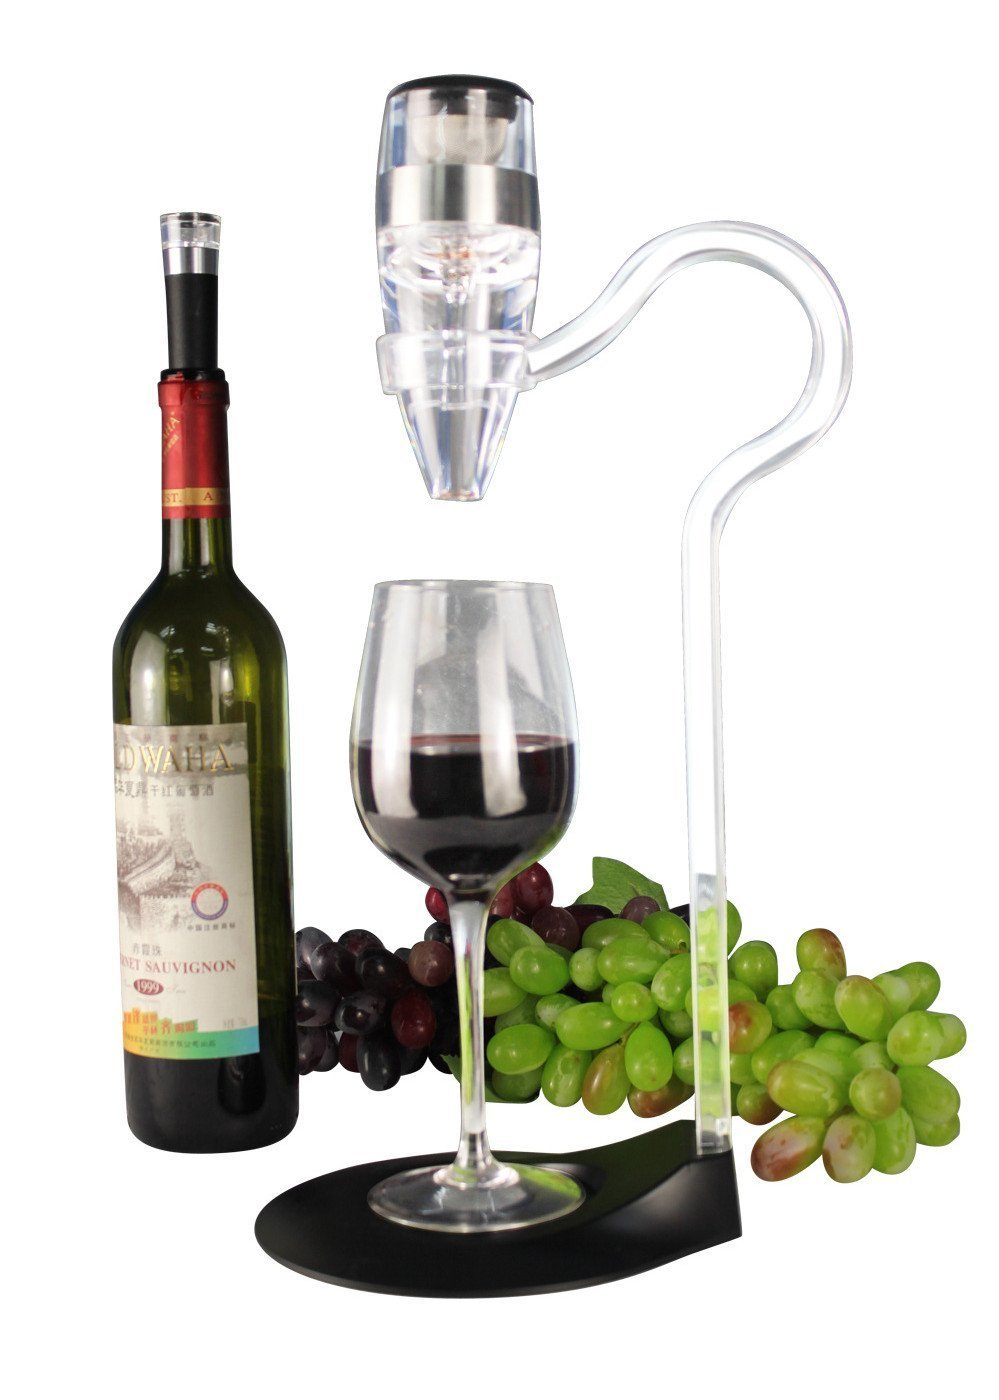 Homeself Wine Aerator Gift Set Wine Aerator Tower - Aerator with Aluminium Ring, Aerator Stand with Mini Holder, Aerator Base (Unique Wine Decanters)